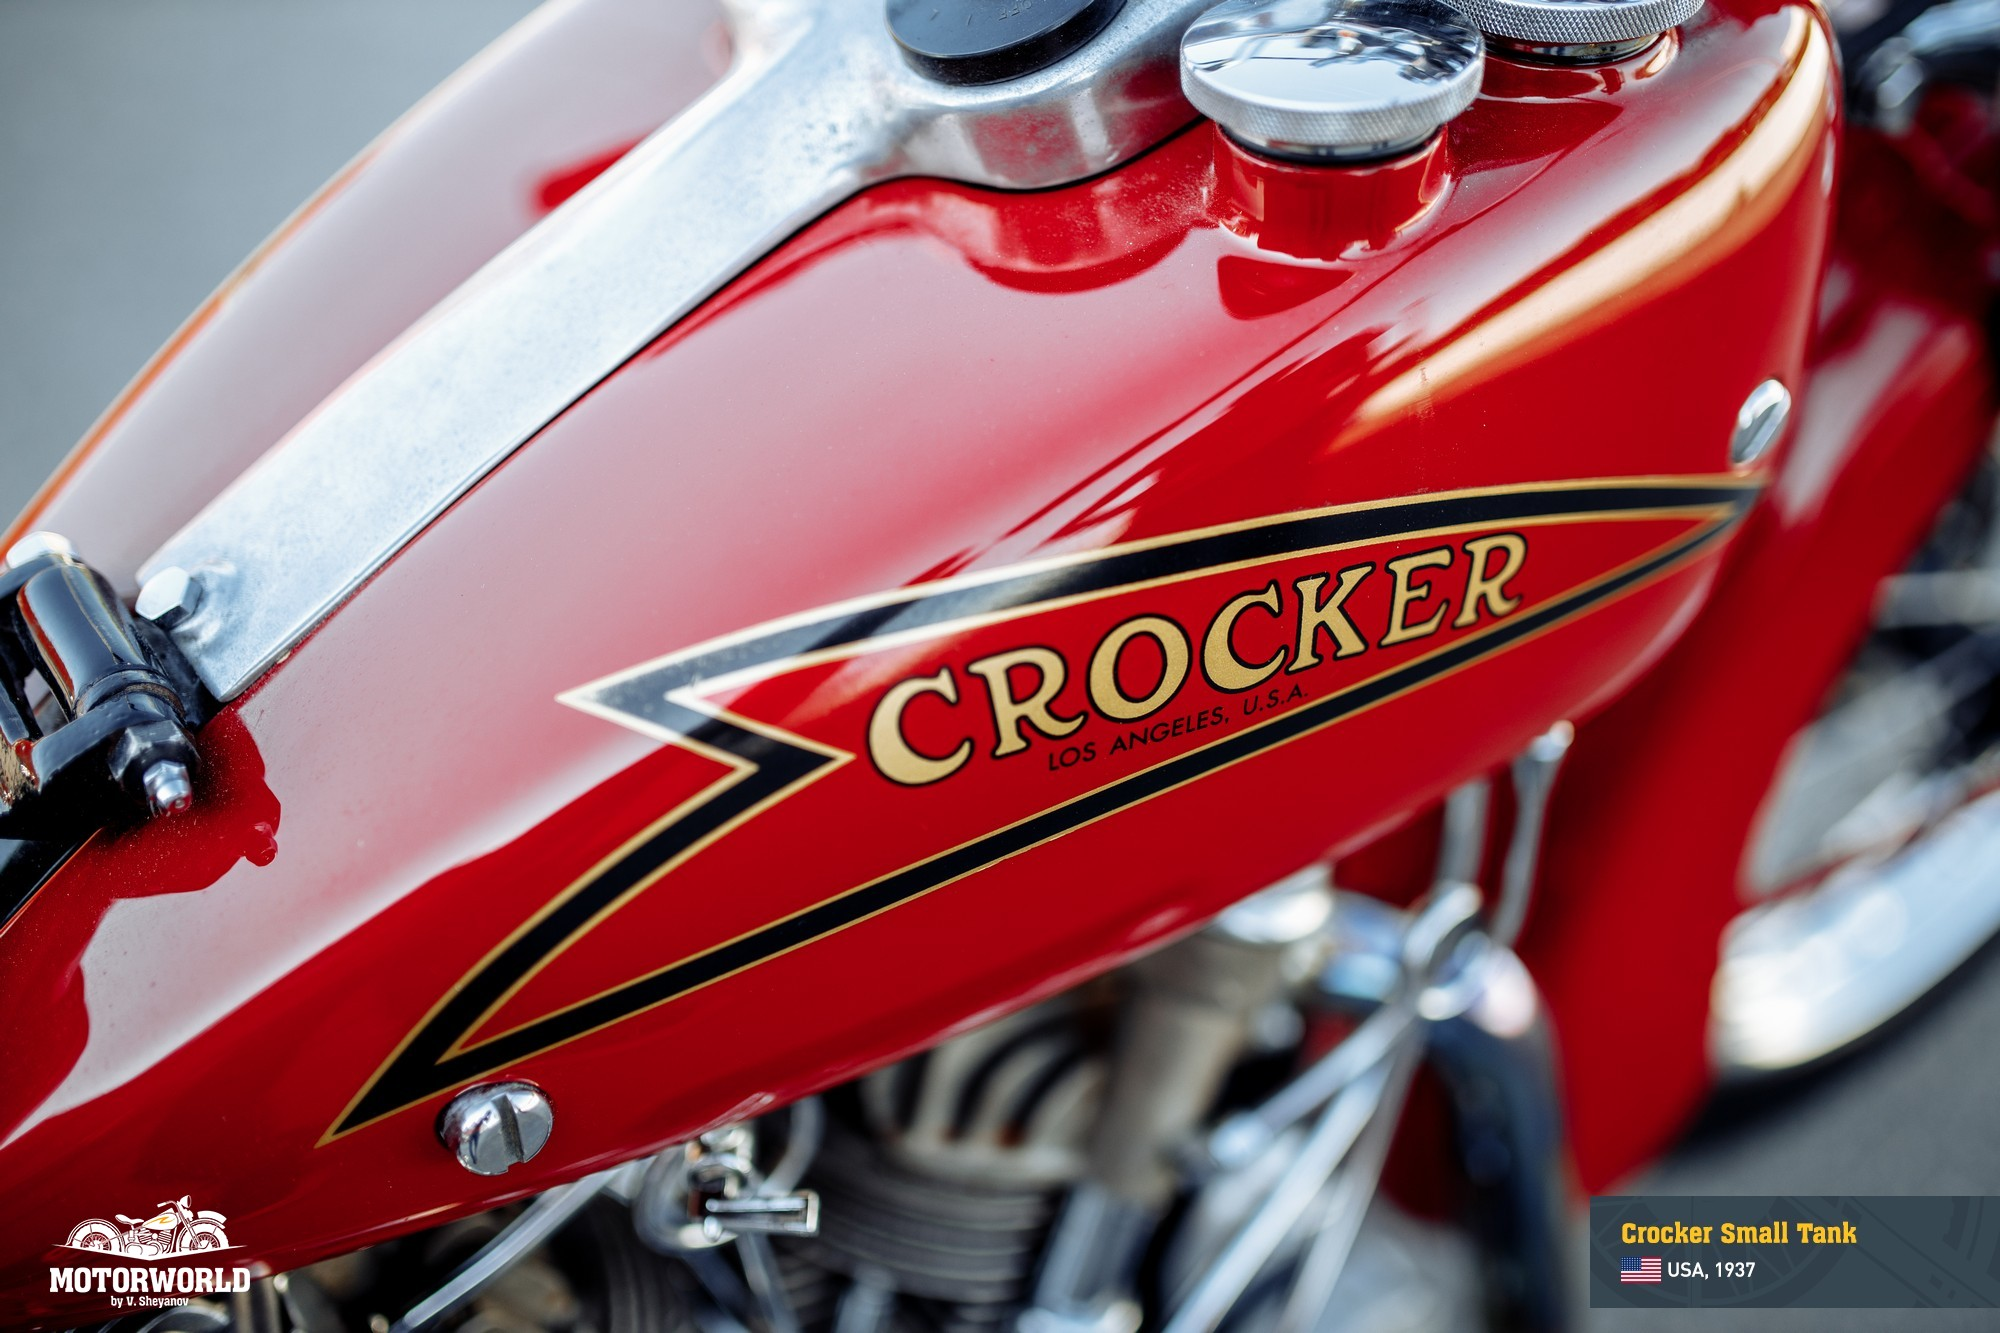 Original Crocker tank